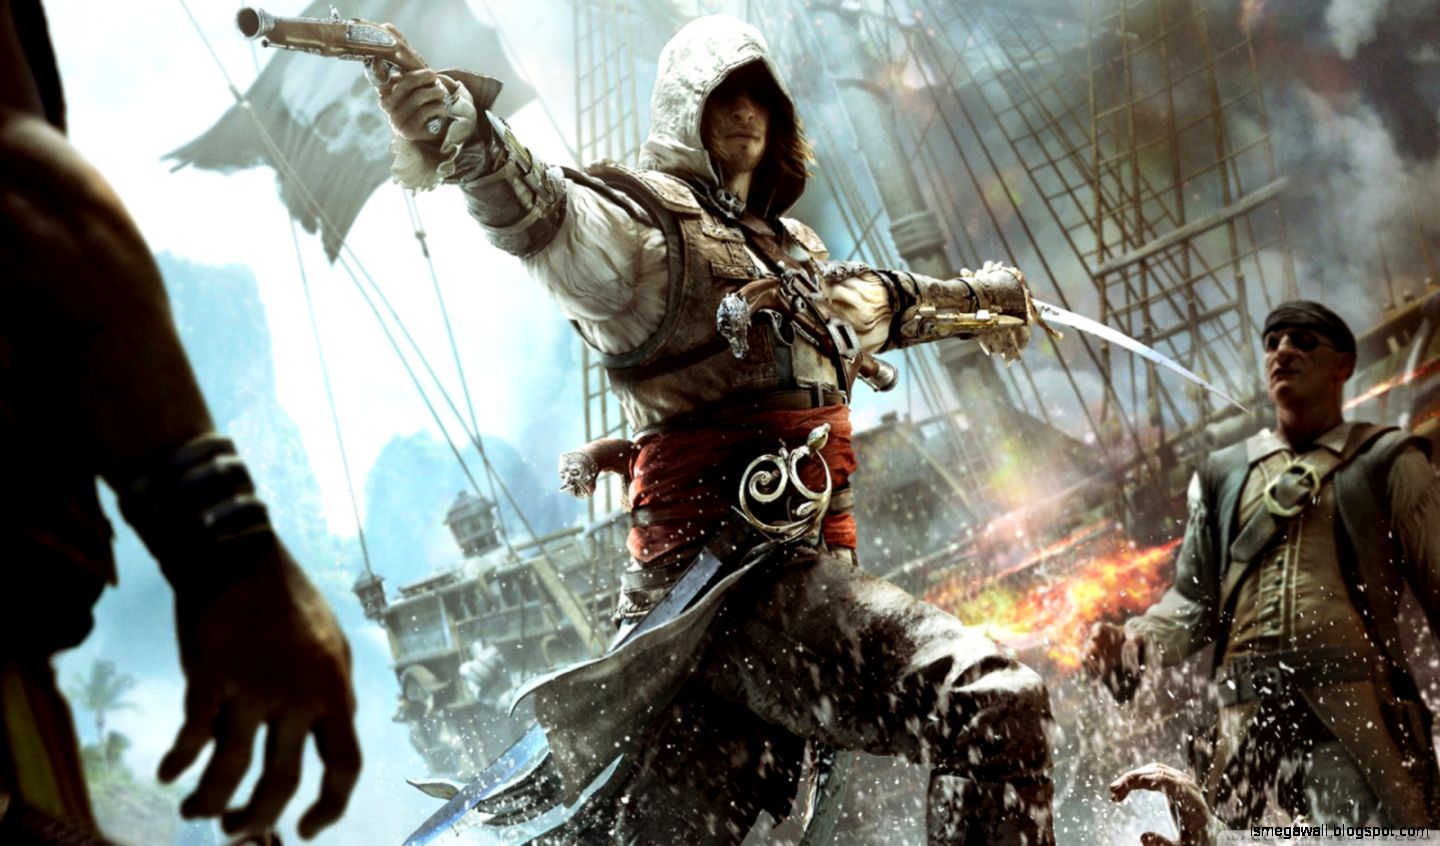 Assassins Creed 4 Black Flag Background Hd Wallpaper Mega Wallpapers